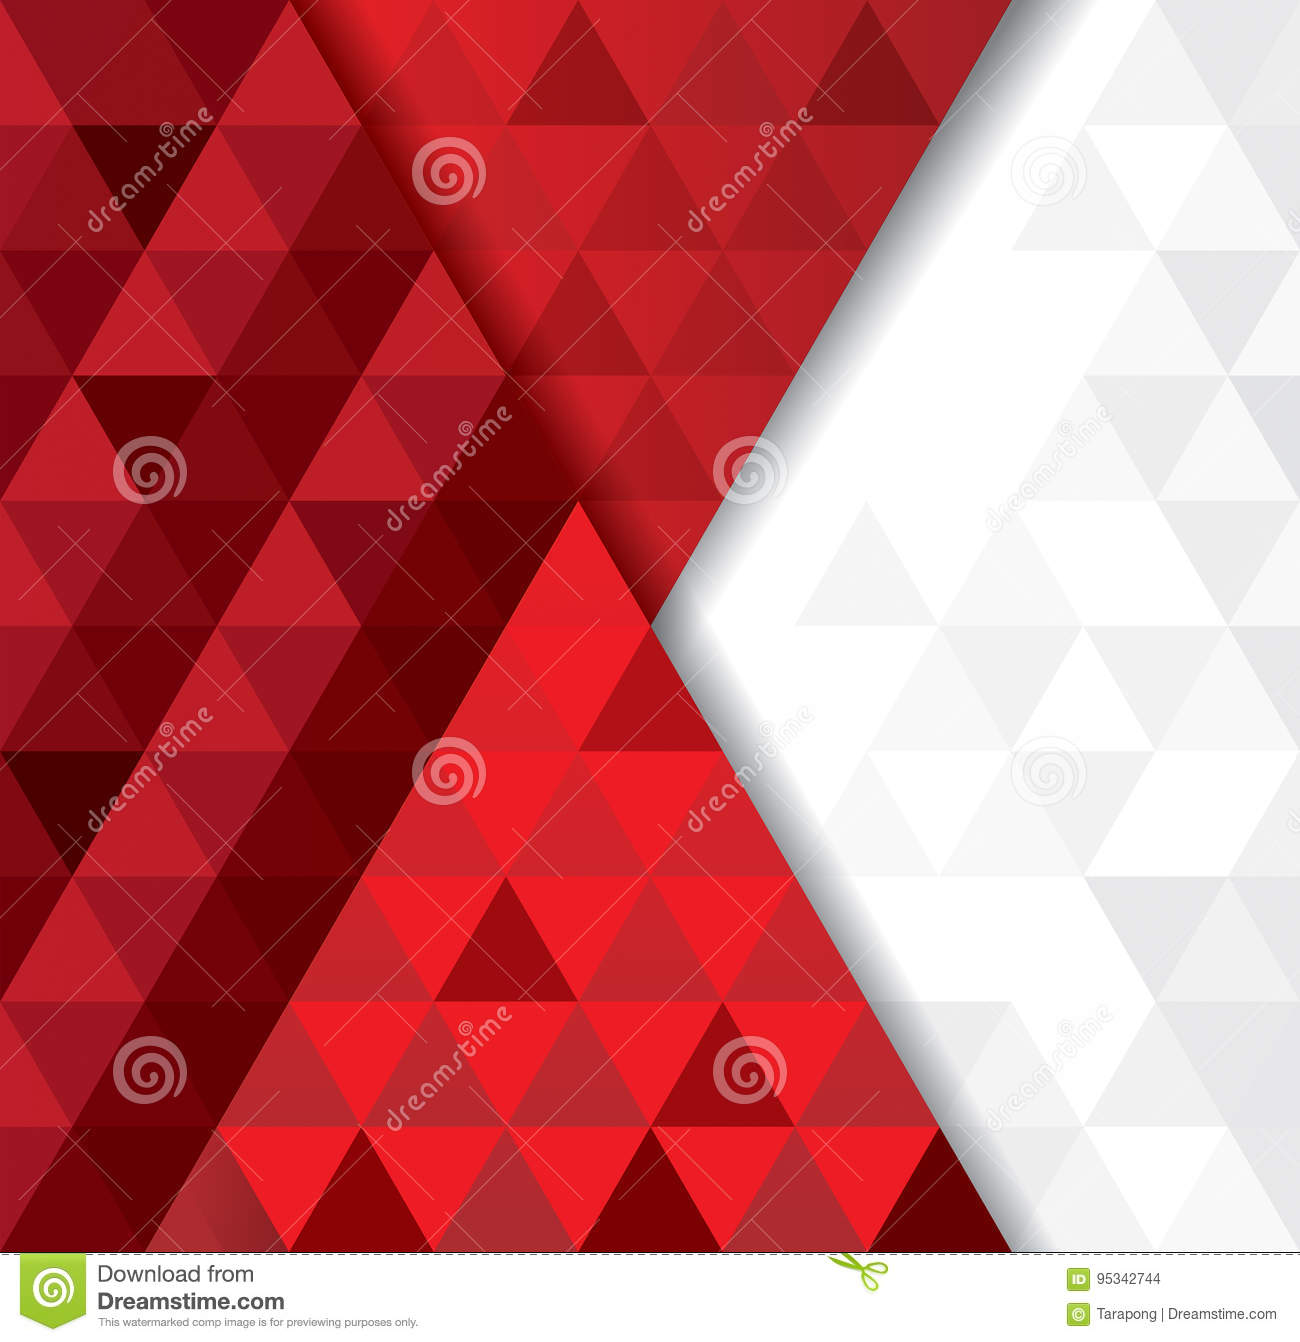 Red Book Cover Pattern : White and red geometric pattern abstract background